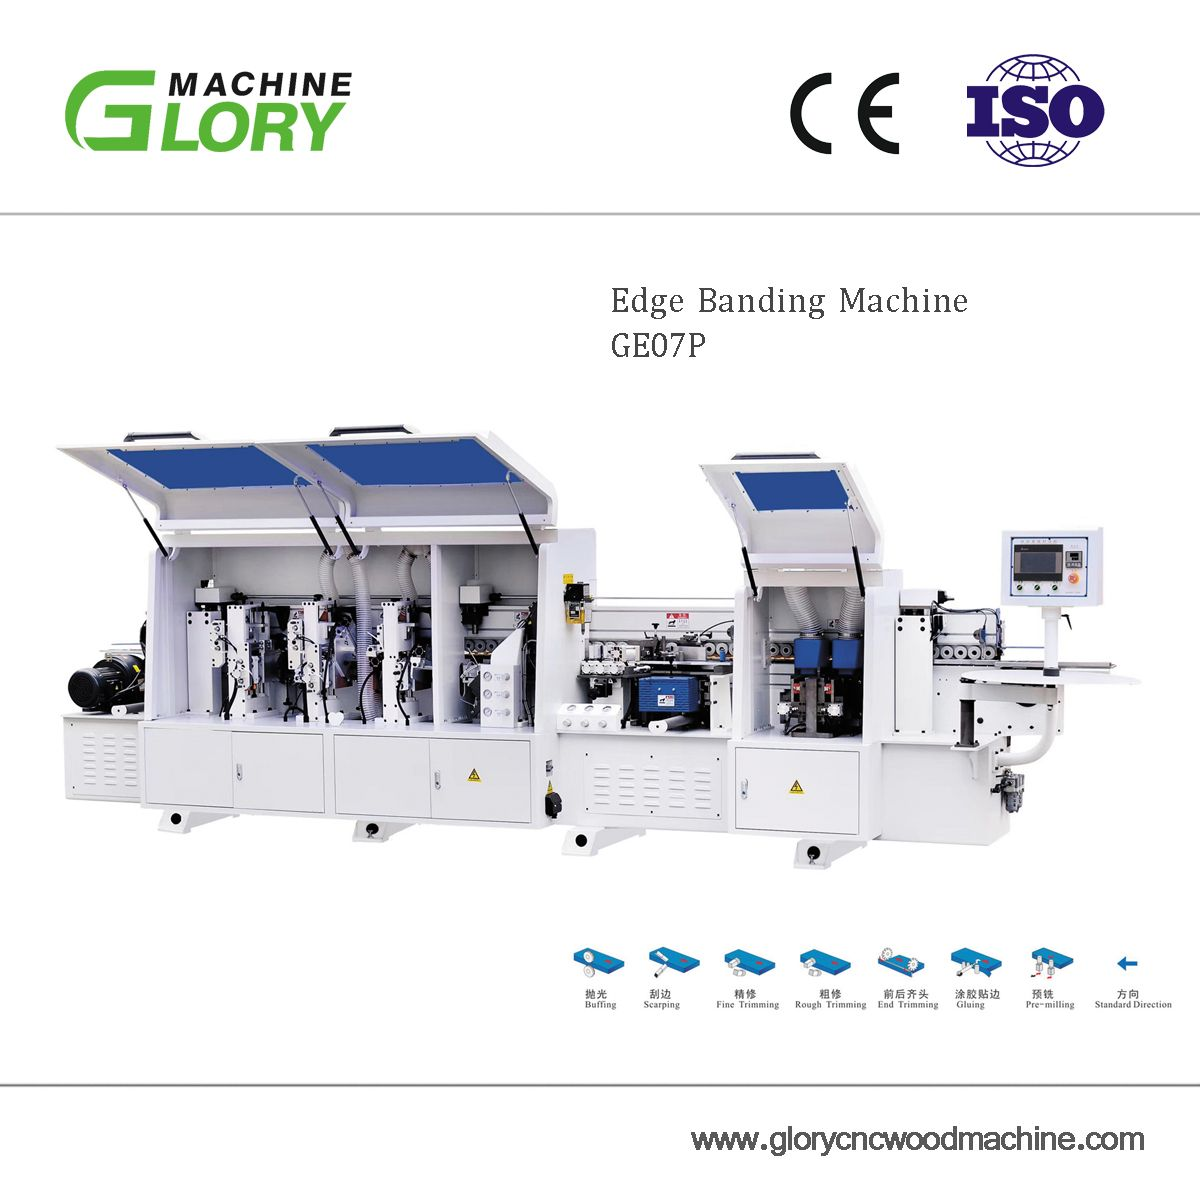 Edge Banding Machine GE07P | Glory Woodworking Machine